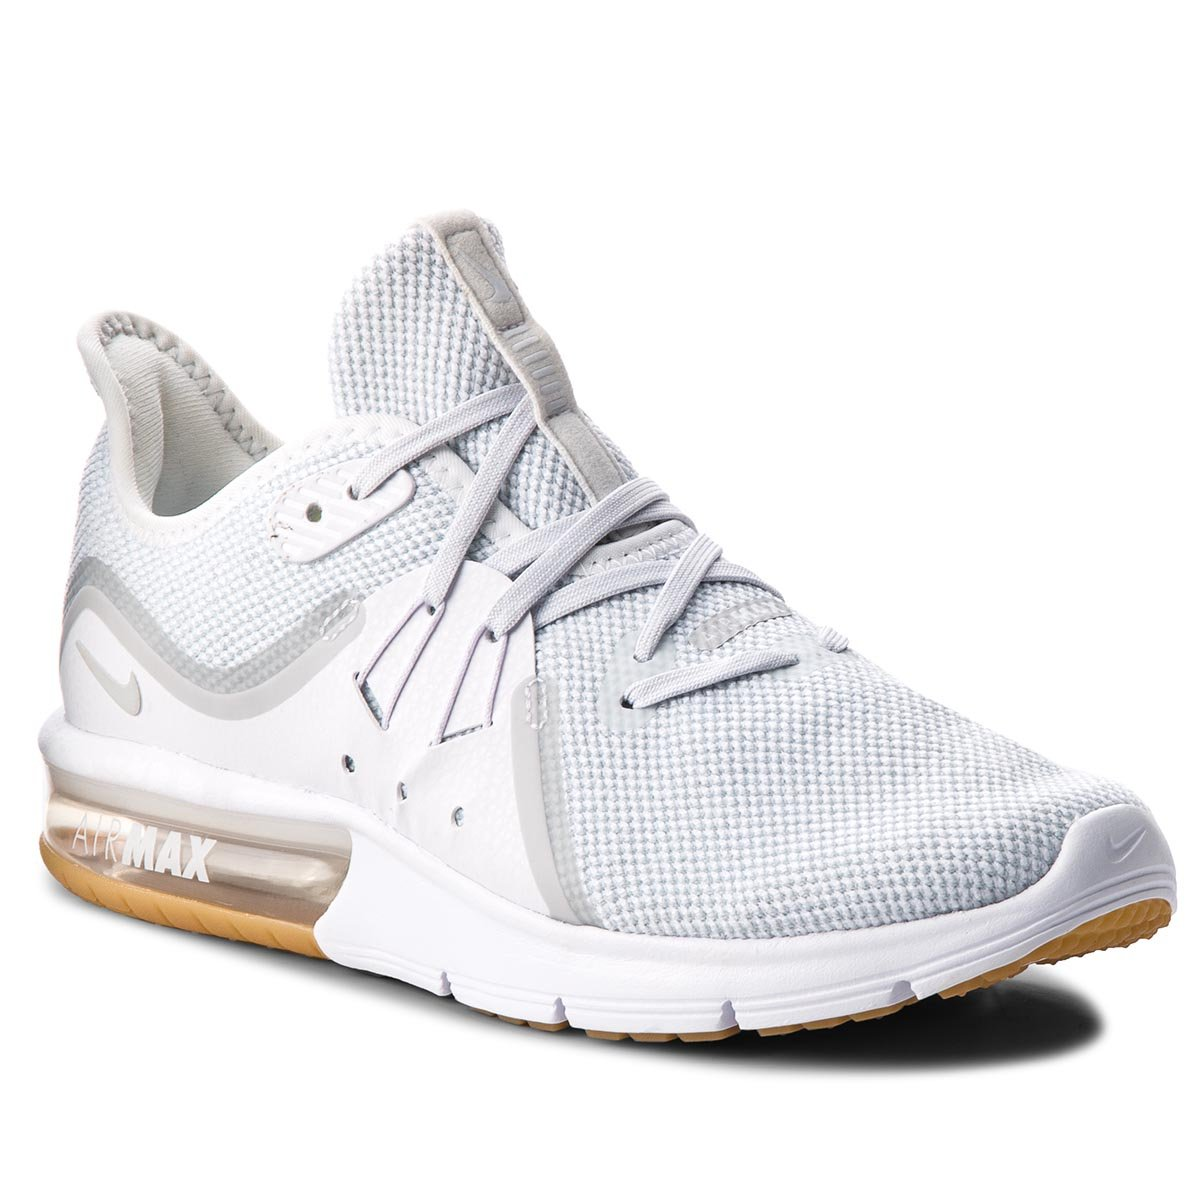 Buty NIKE - Air Max Sequent 3 908993 101 White/Pure Platinum